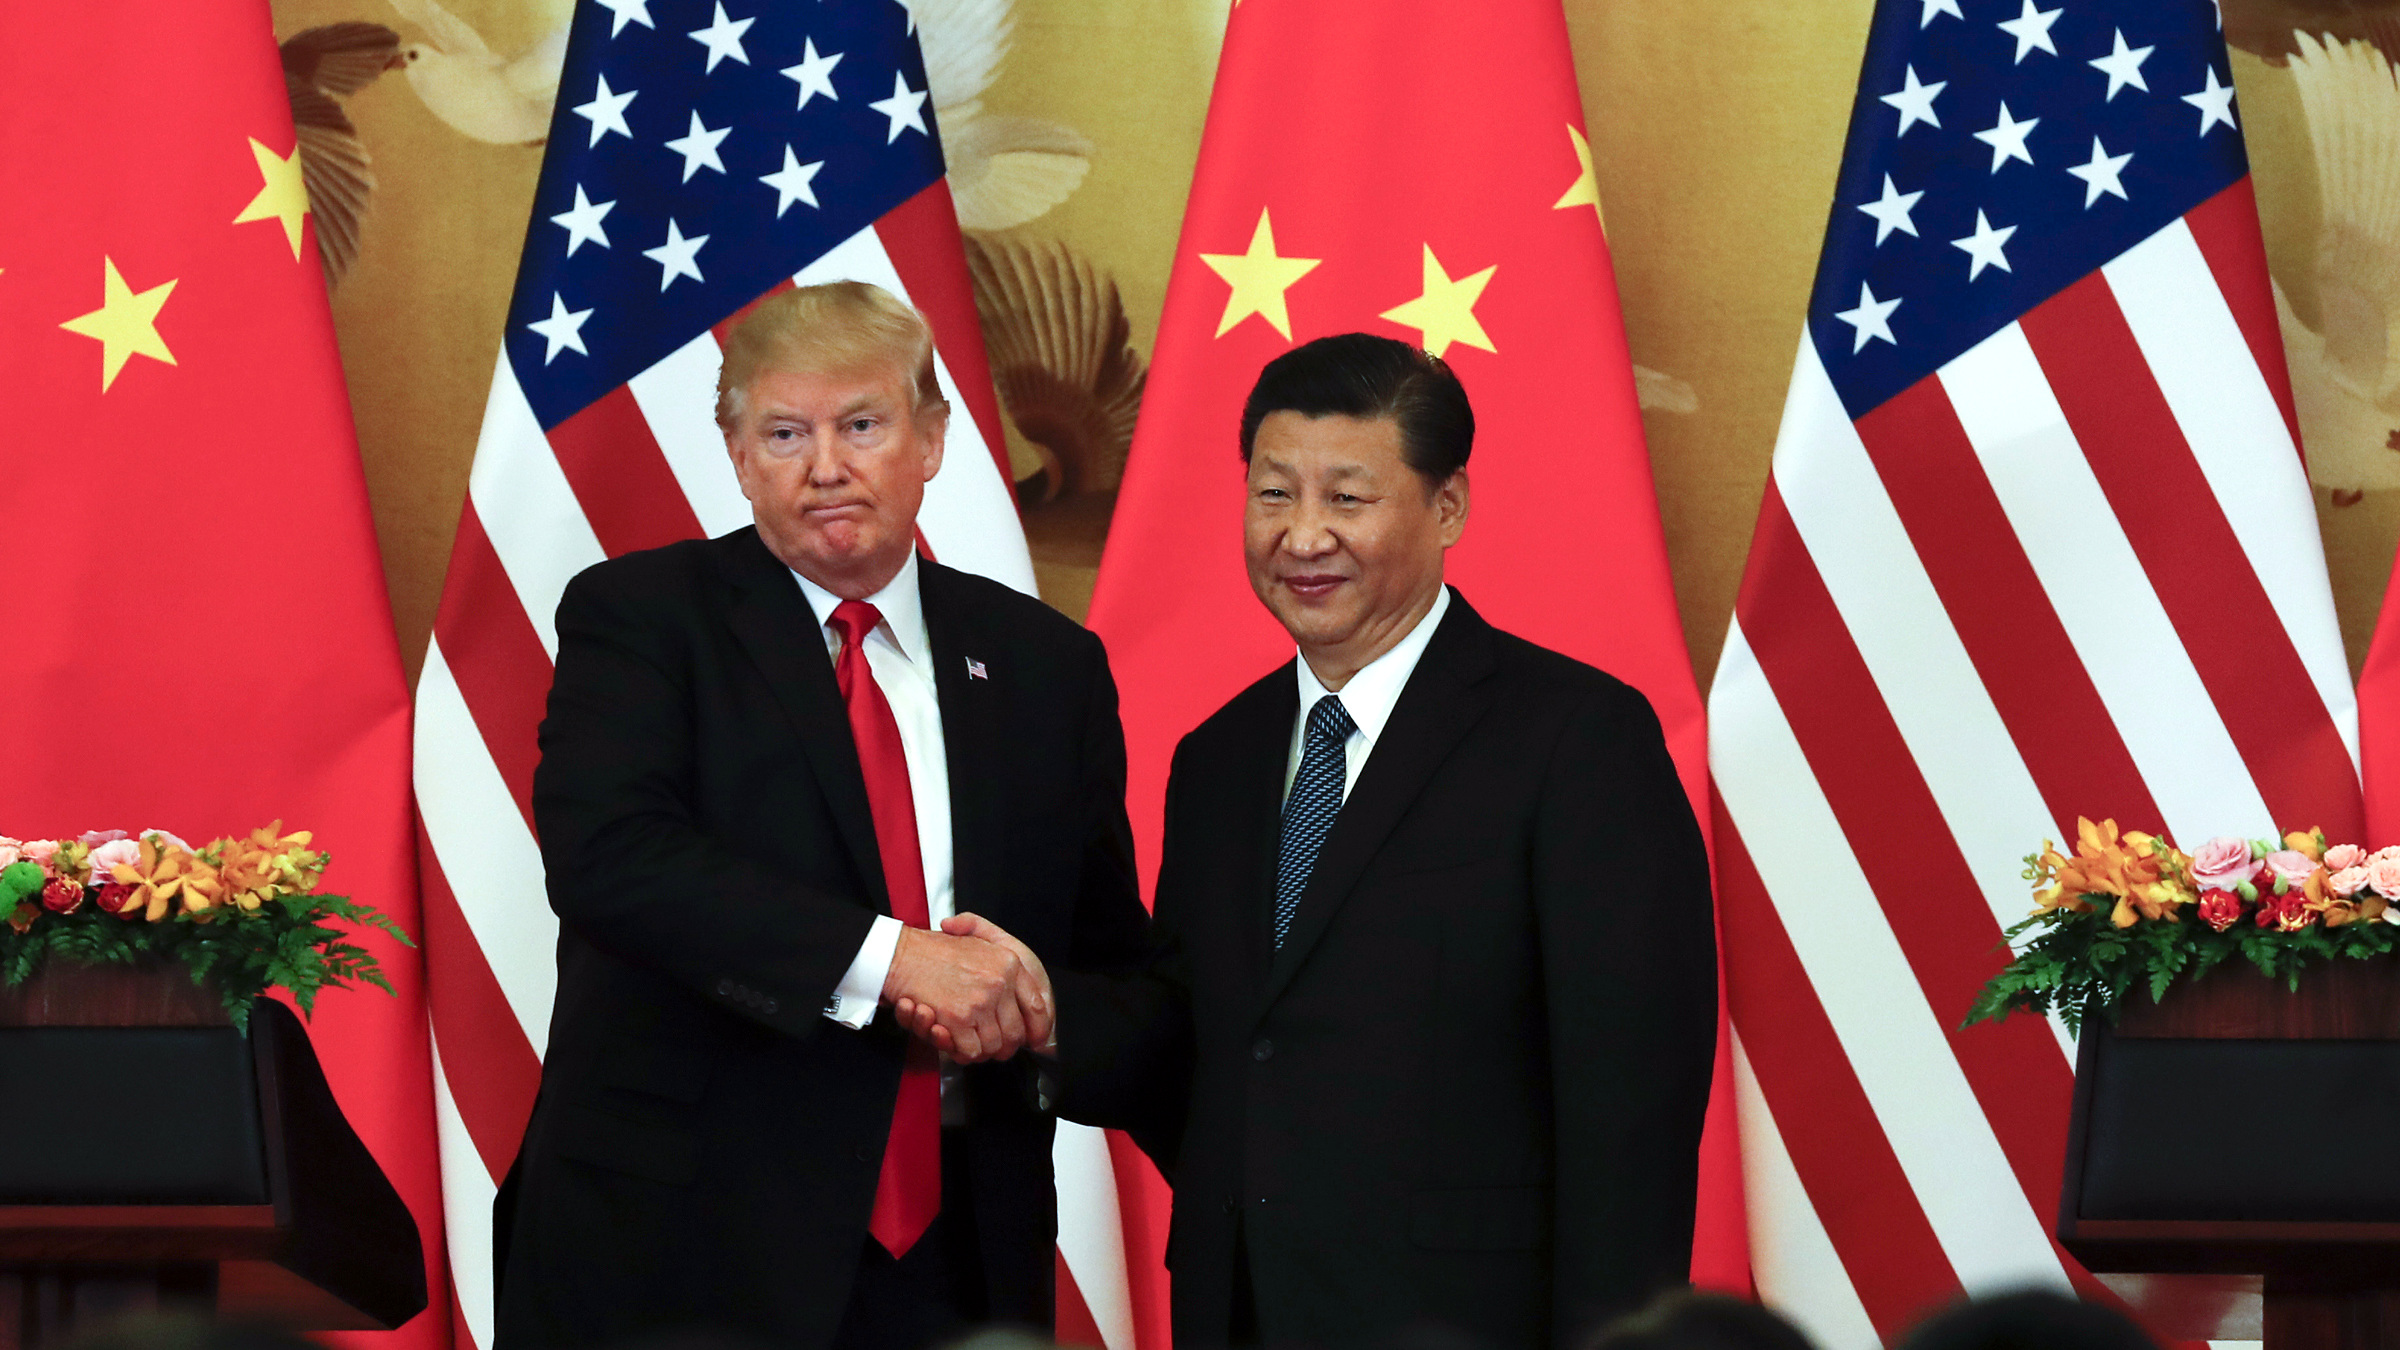 U.S. President Donald Trump, left, poses with Chinese President Xi Jinping for a photo after a joint press conference at the Great Hall of the People in Beijing, Thursday, Nov. 9, 2017. Trump is on a five-country trip through Asia traveling to Japan, South Korea, China, Vietnam and the Philippines.